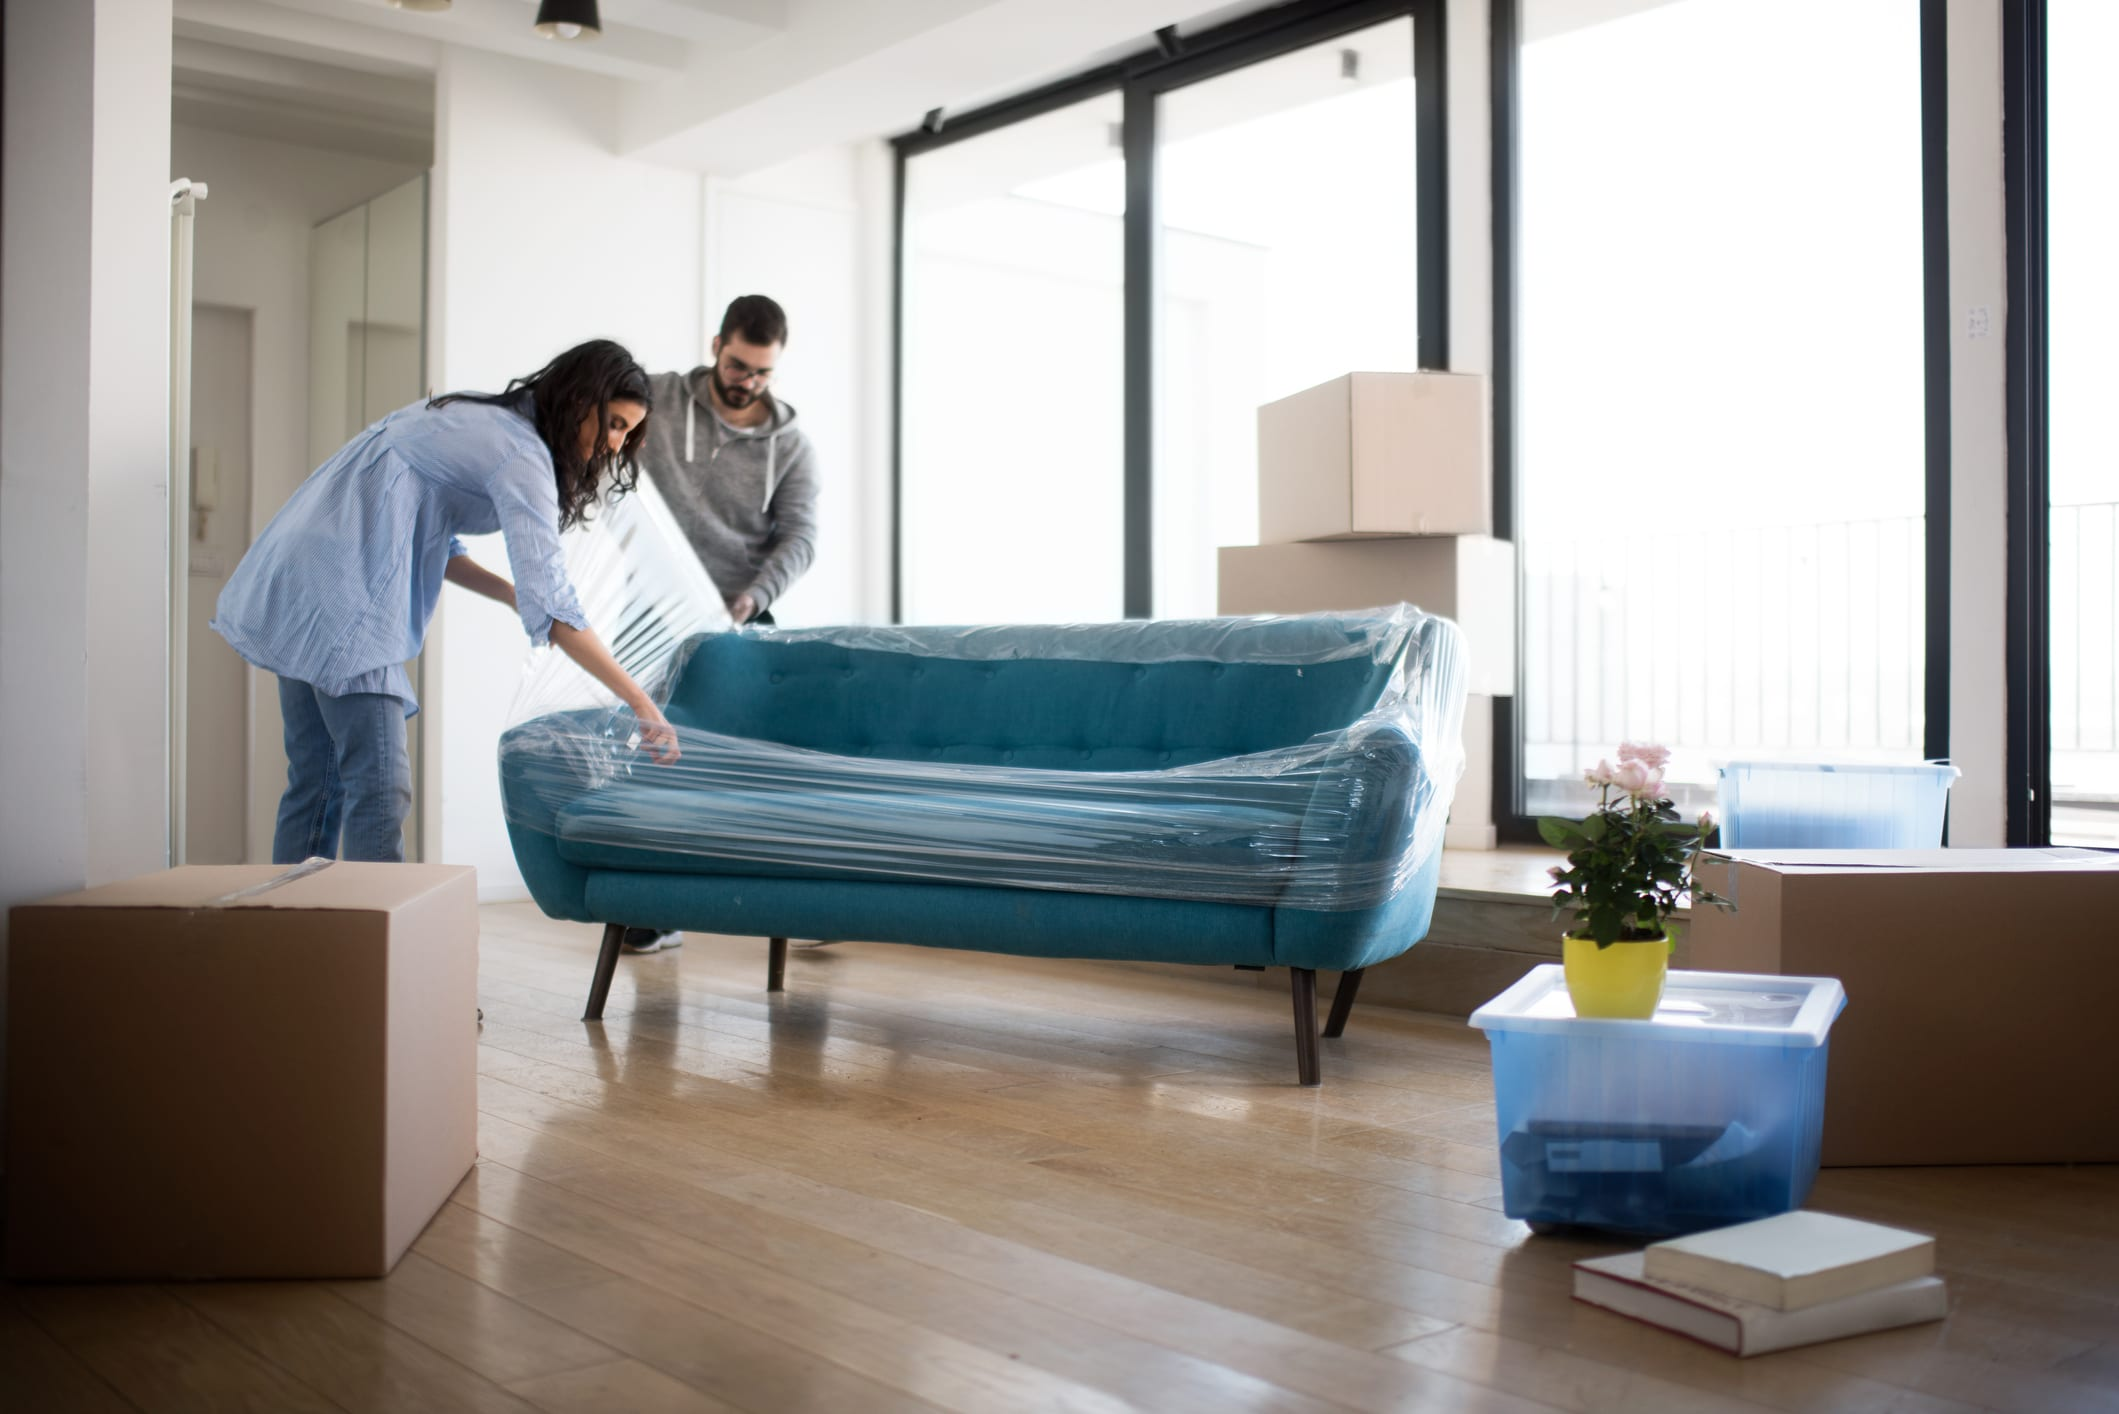 Young Couple Unwrapping a Sofa in Their Apartment